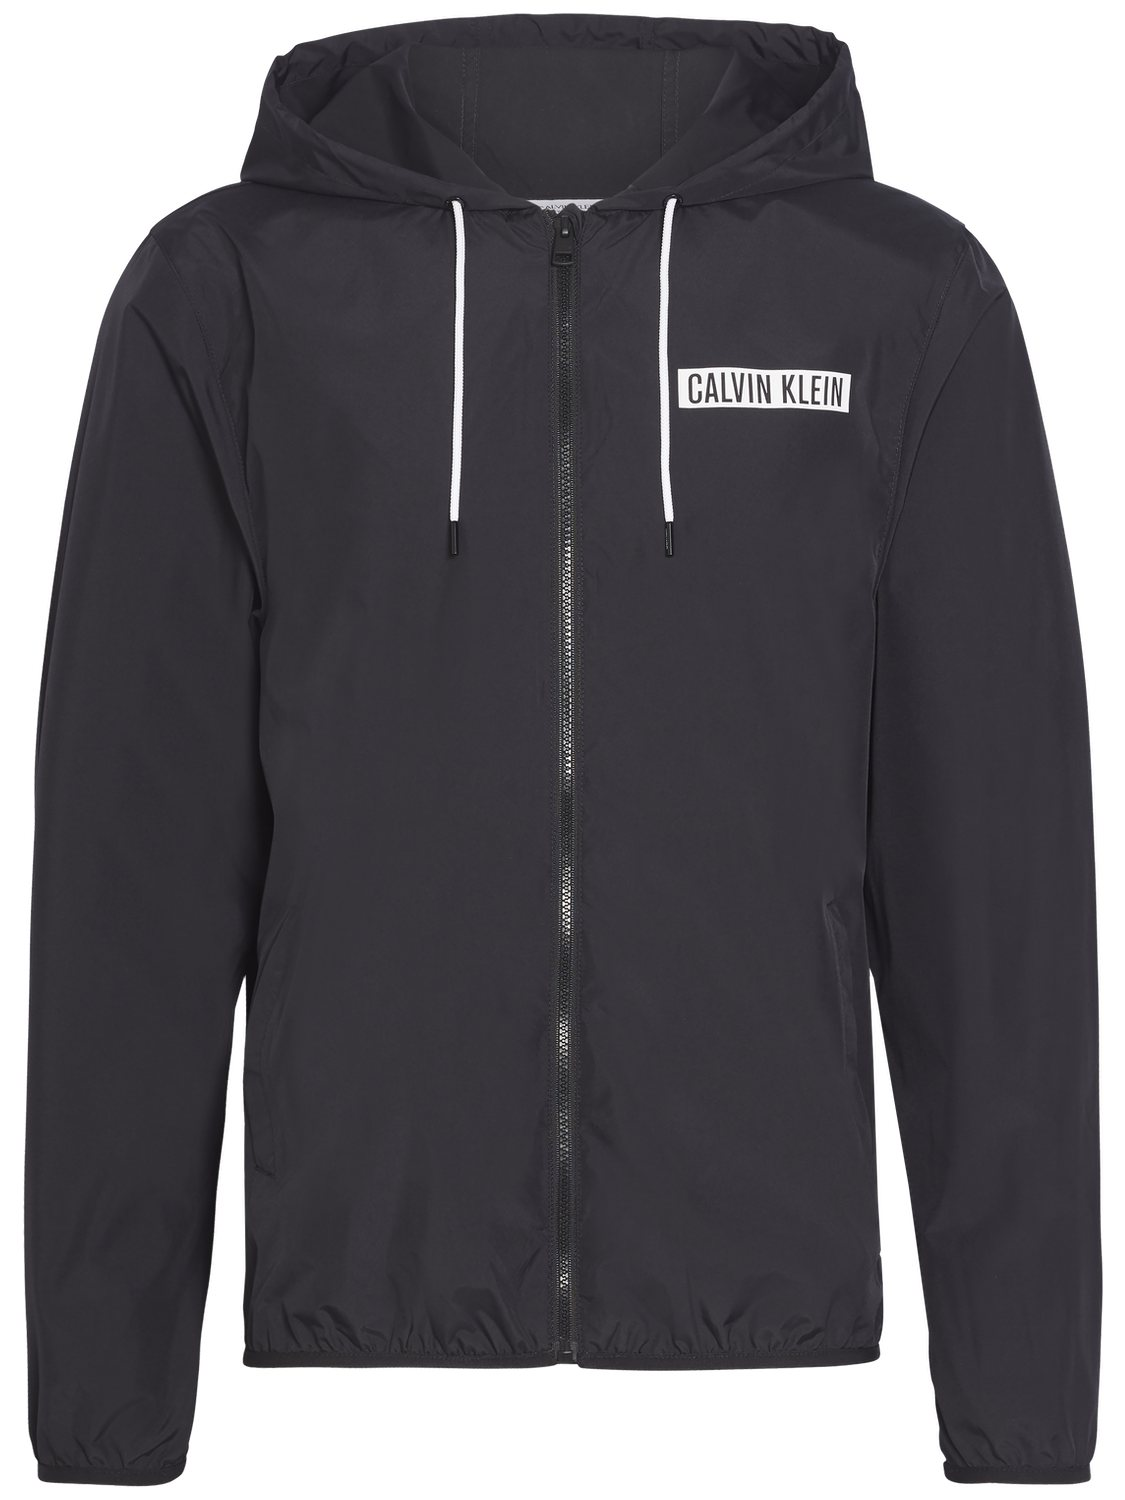 CALVIN KLEIN - WINDBREAKER BLACK | Gate36 Hobro